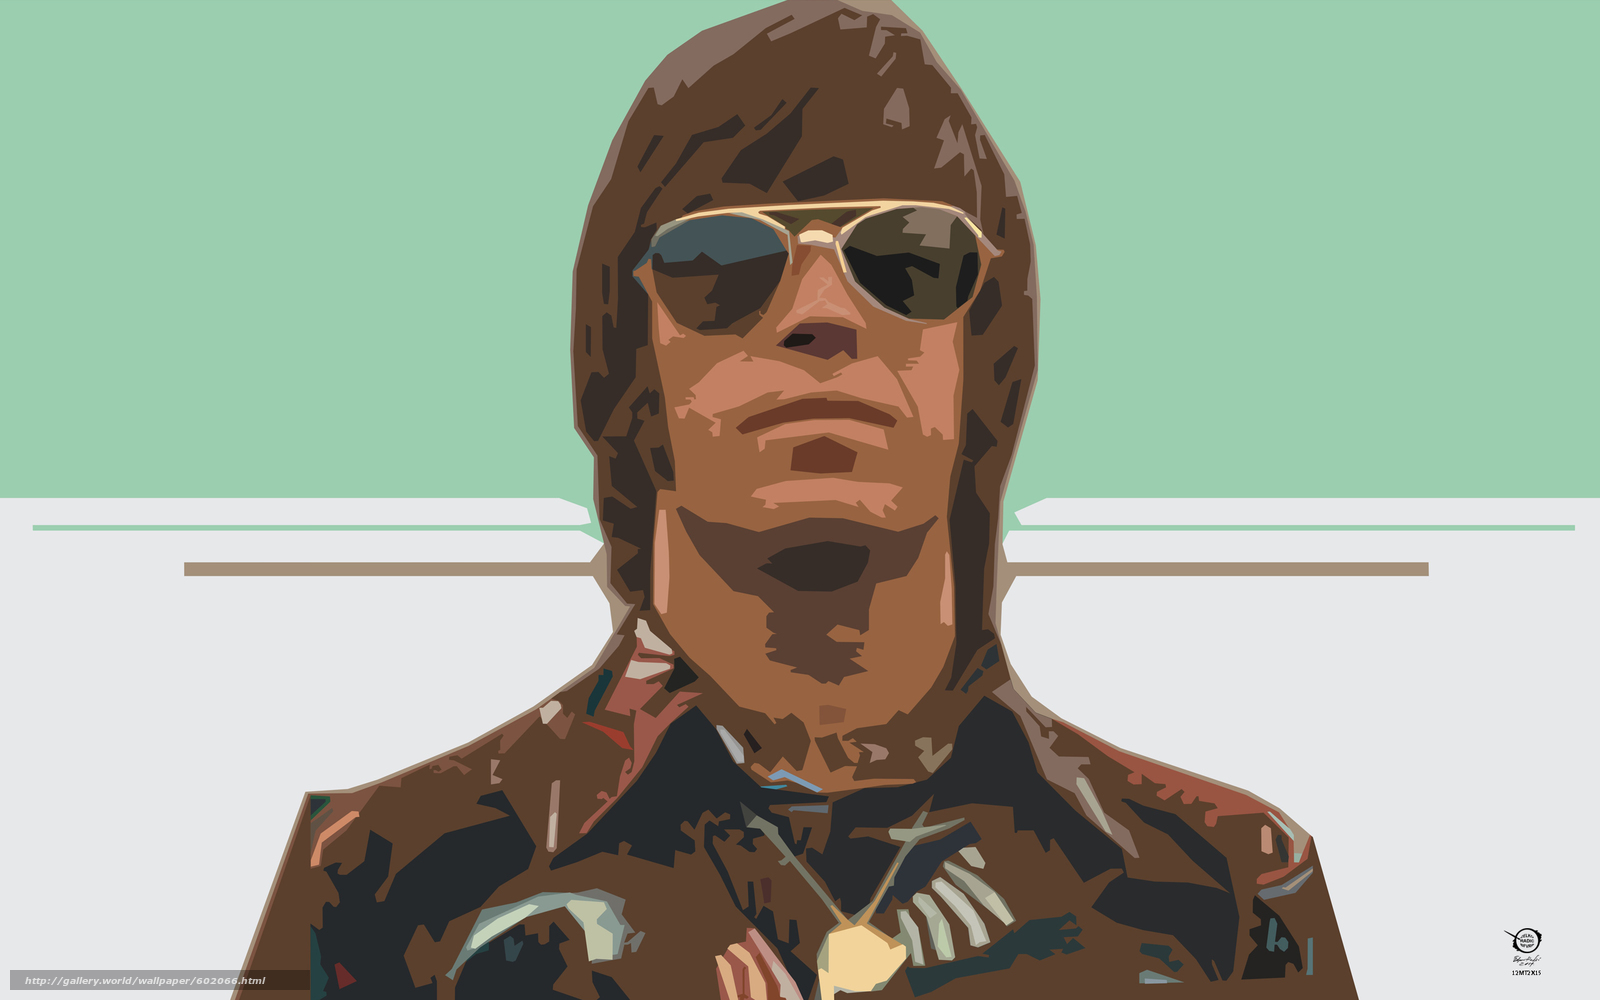 chuck, norris, cak, noris, bfvrp, zelko, radic, digital, drawings, design, artworks